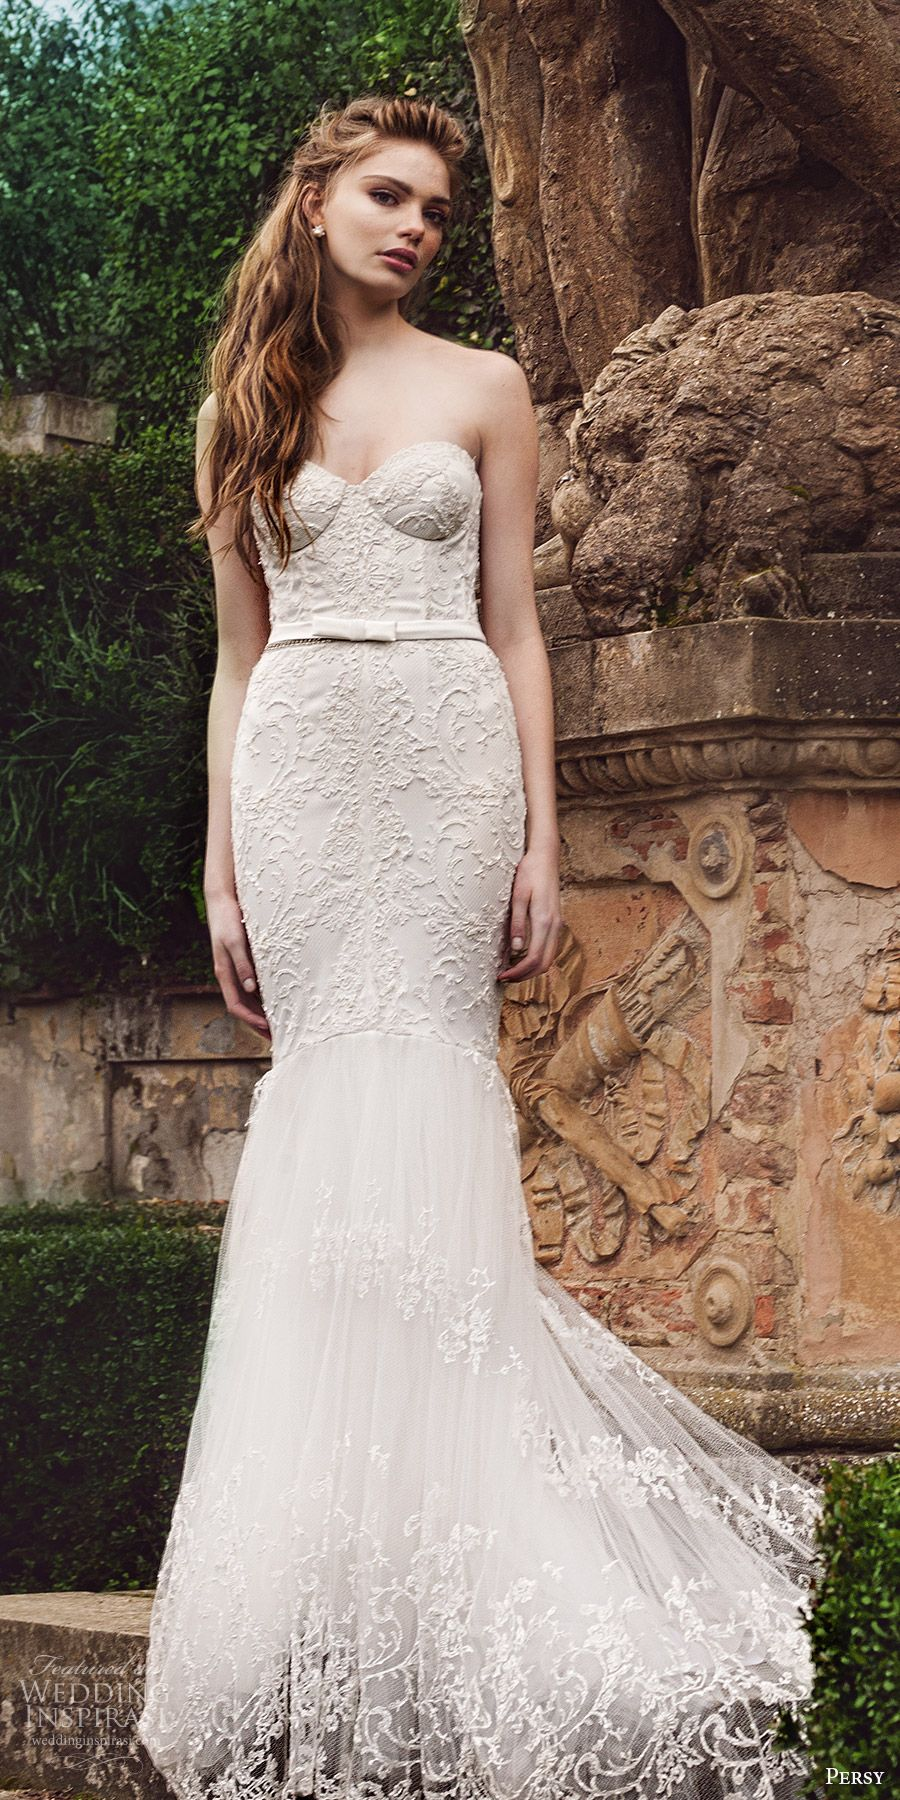 Lace fit and flare wedding dress with sleeves  Persy  ucLe Jardinud Wedding Dresses u Exclusive First Look  Lace